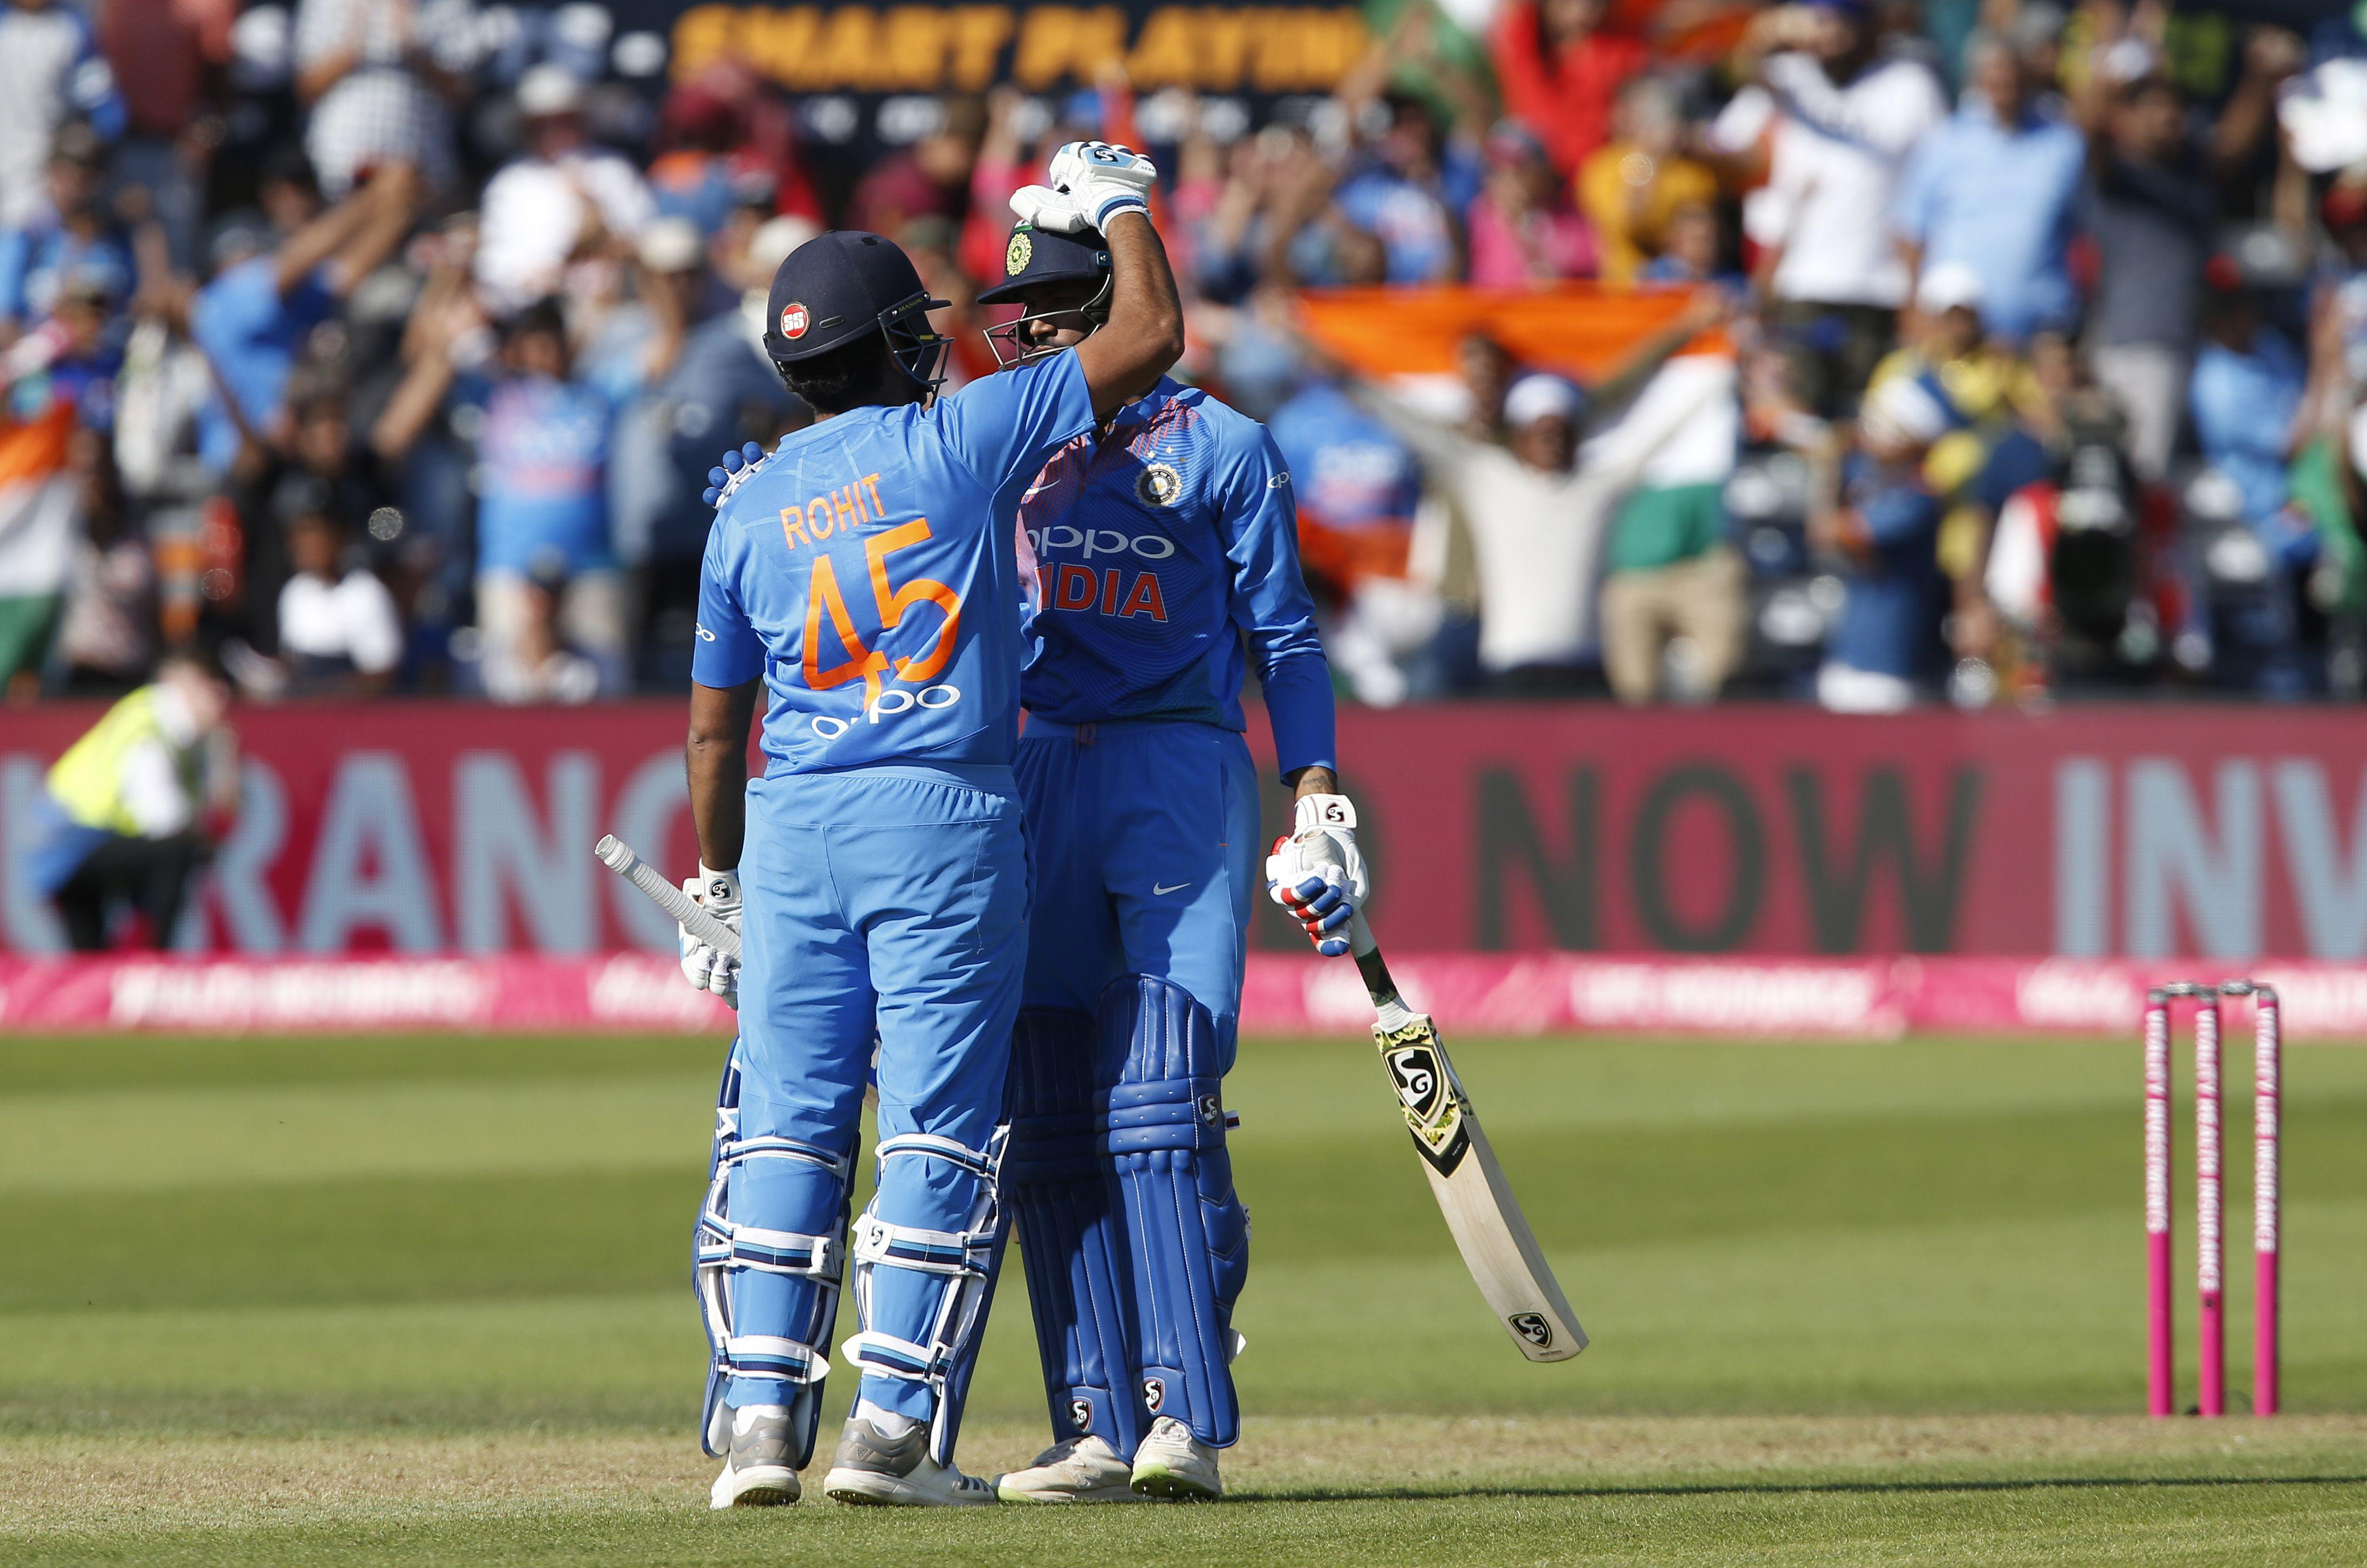 Rohit Sharma guided India to victory in Bristol to win the T20 series